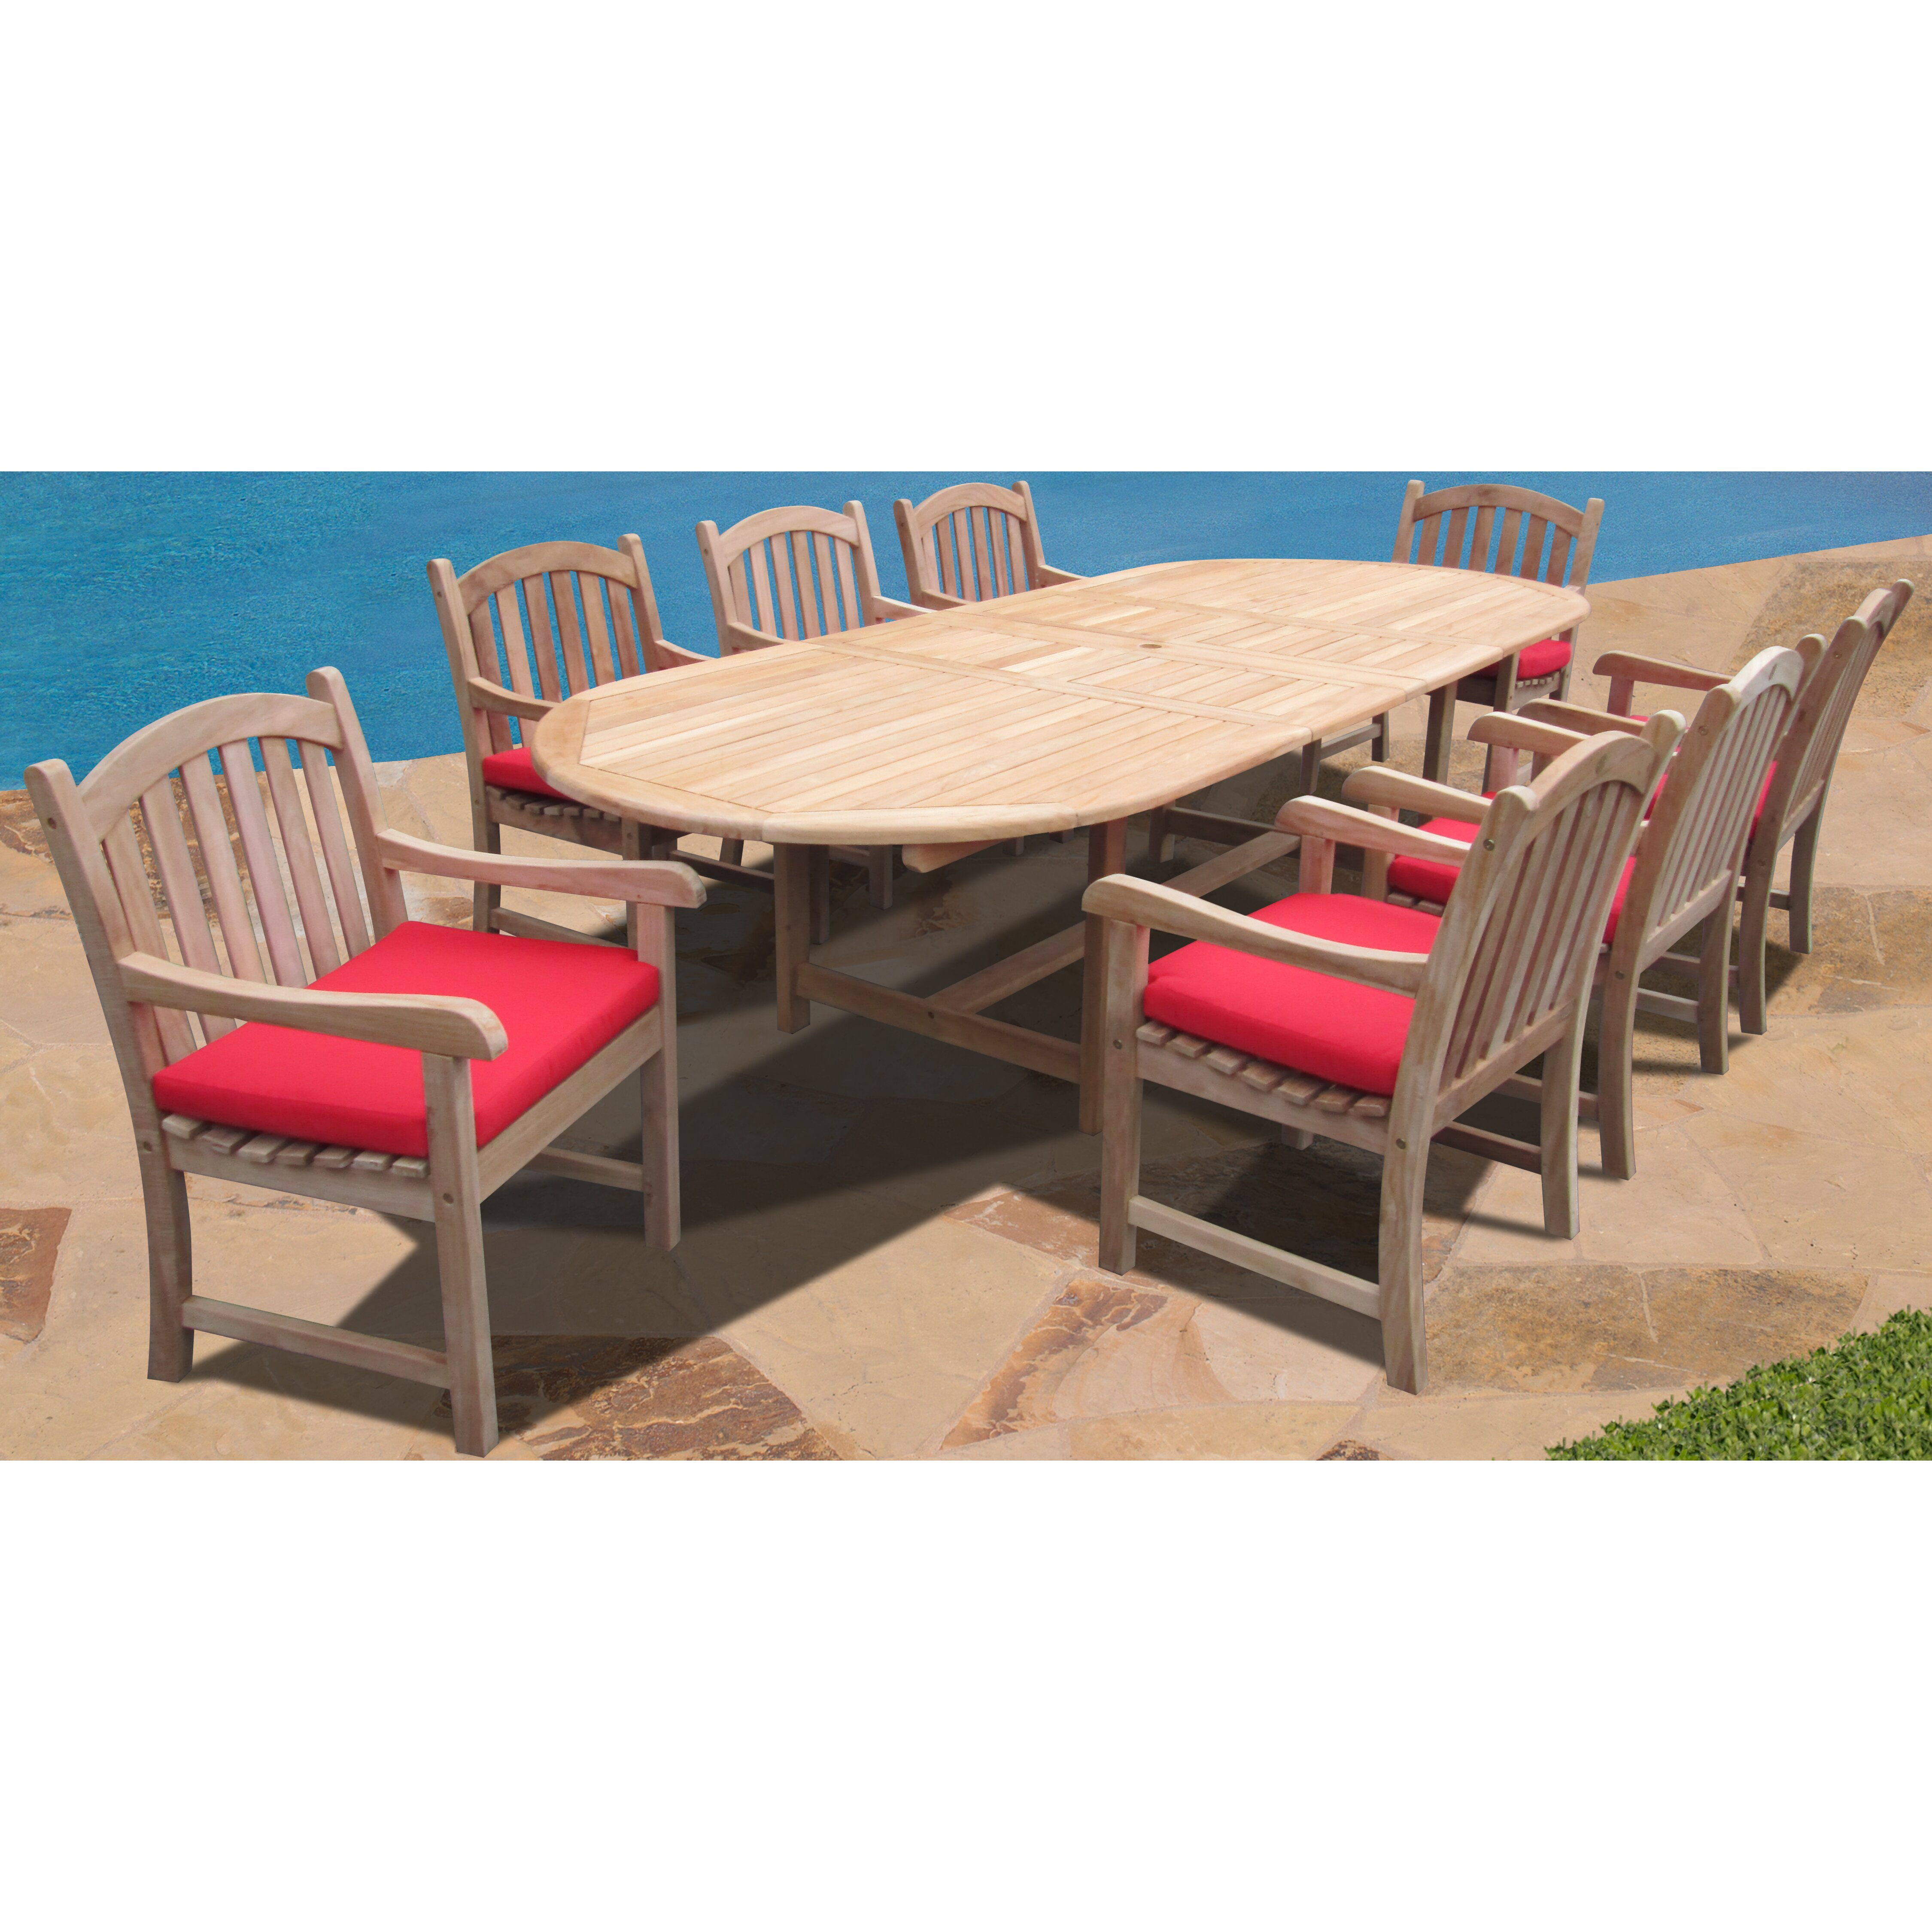 Forever patio verano 9 piece dining set with cushions for Outdoor furniture 9 piece